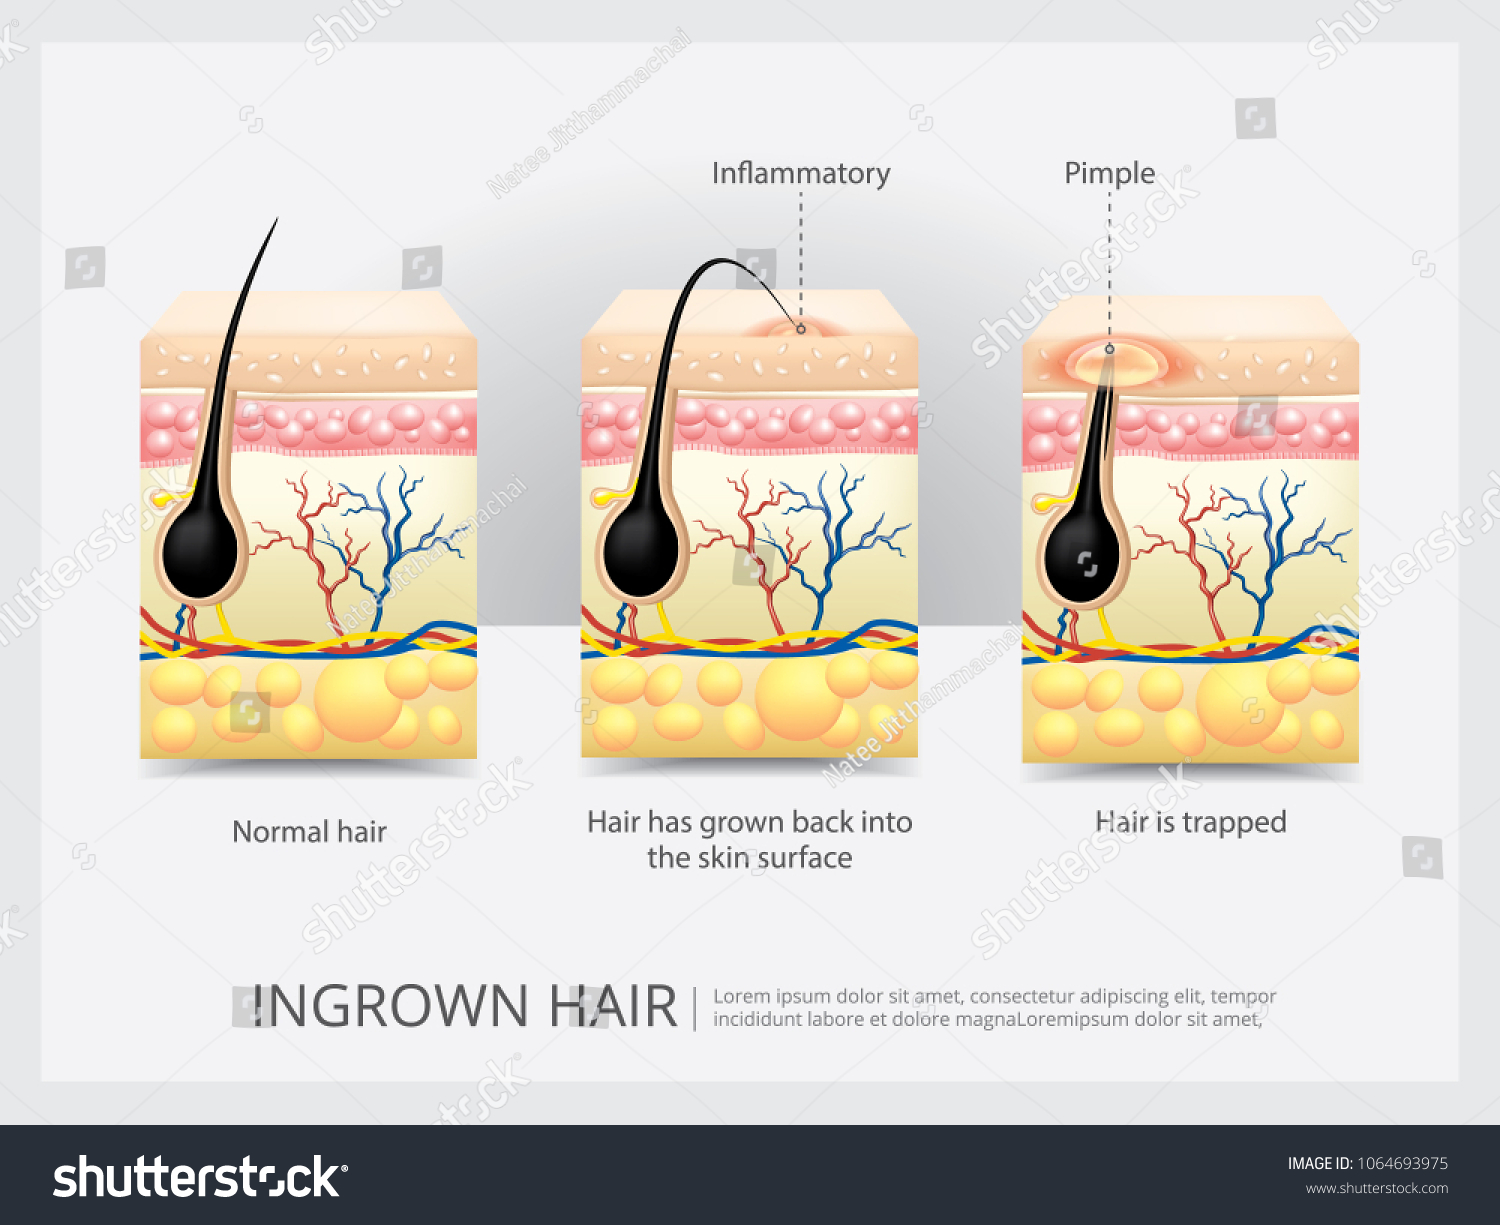 Ingrown Hair Structure Vector Illustration Stock Vector Royalty